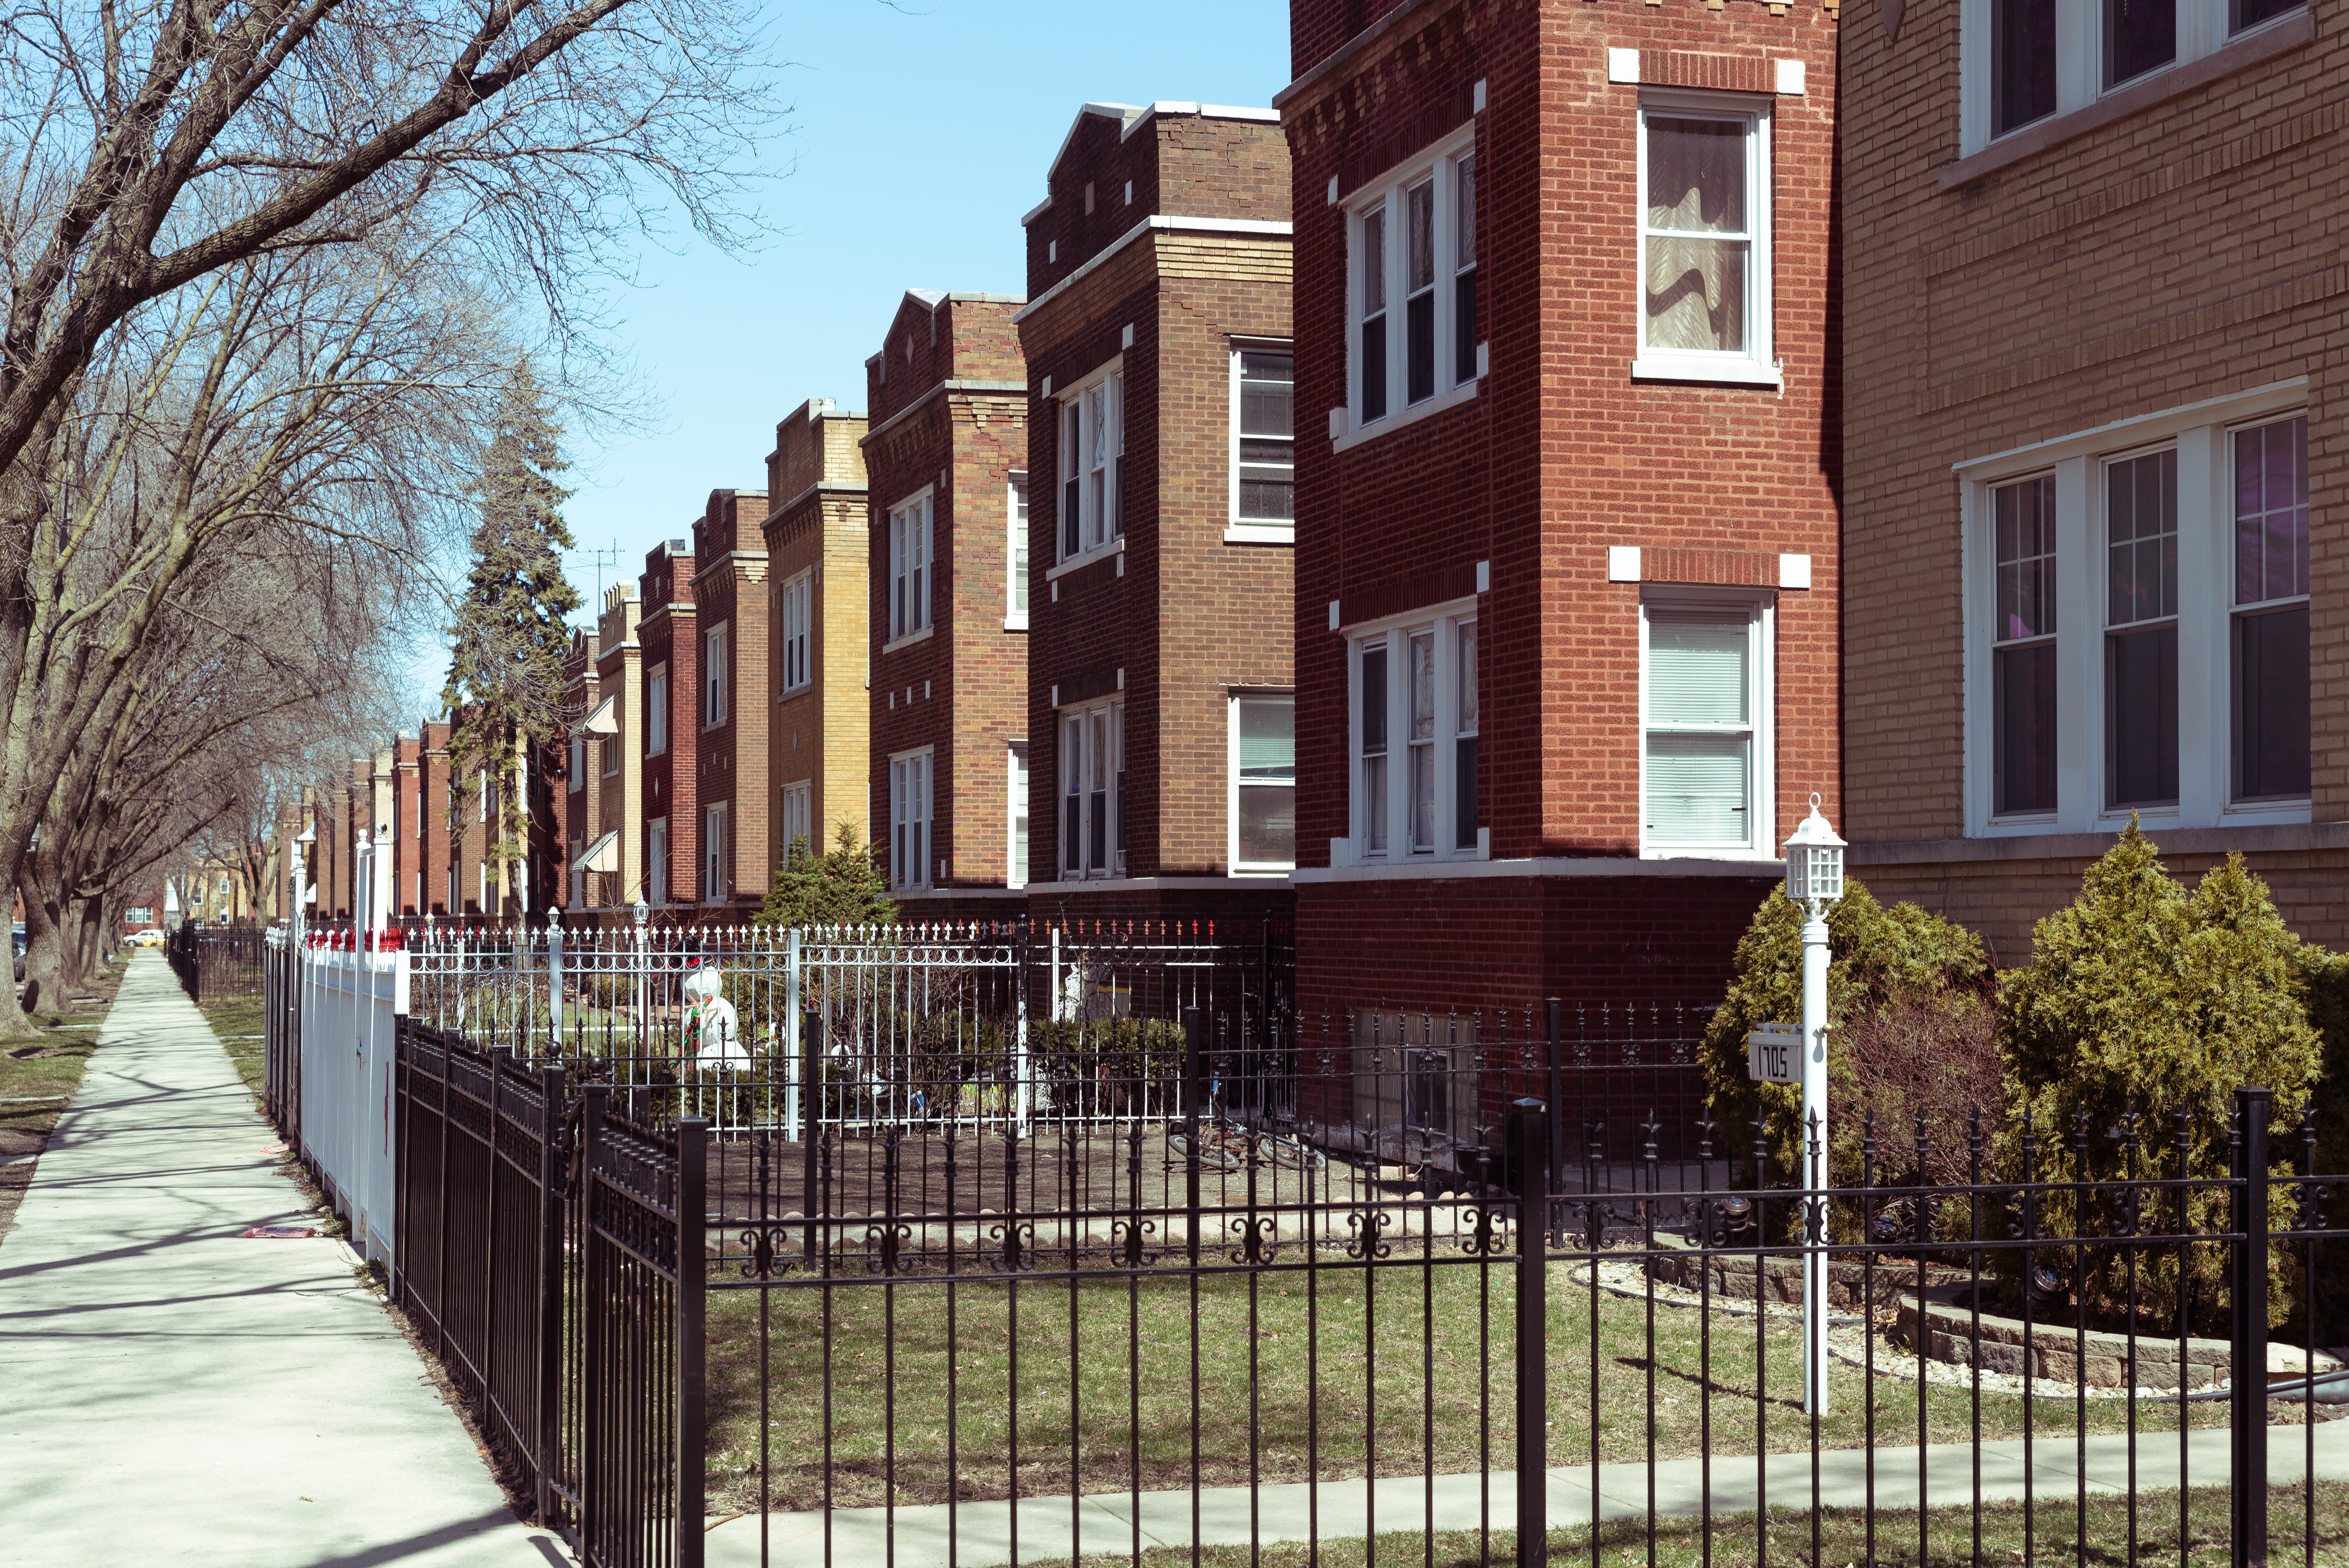 A row of brick residential buildings standing two and three stories high on a street with trees and grassy lawns.